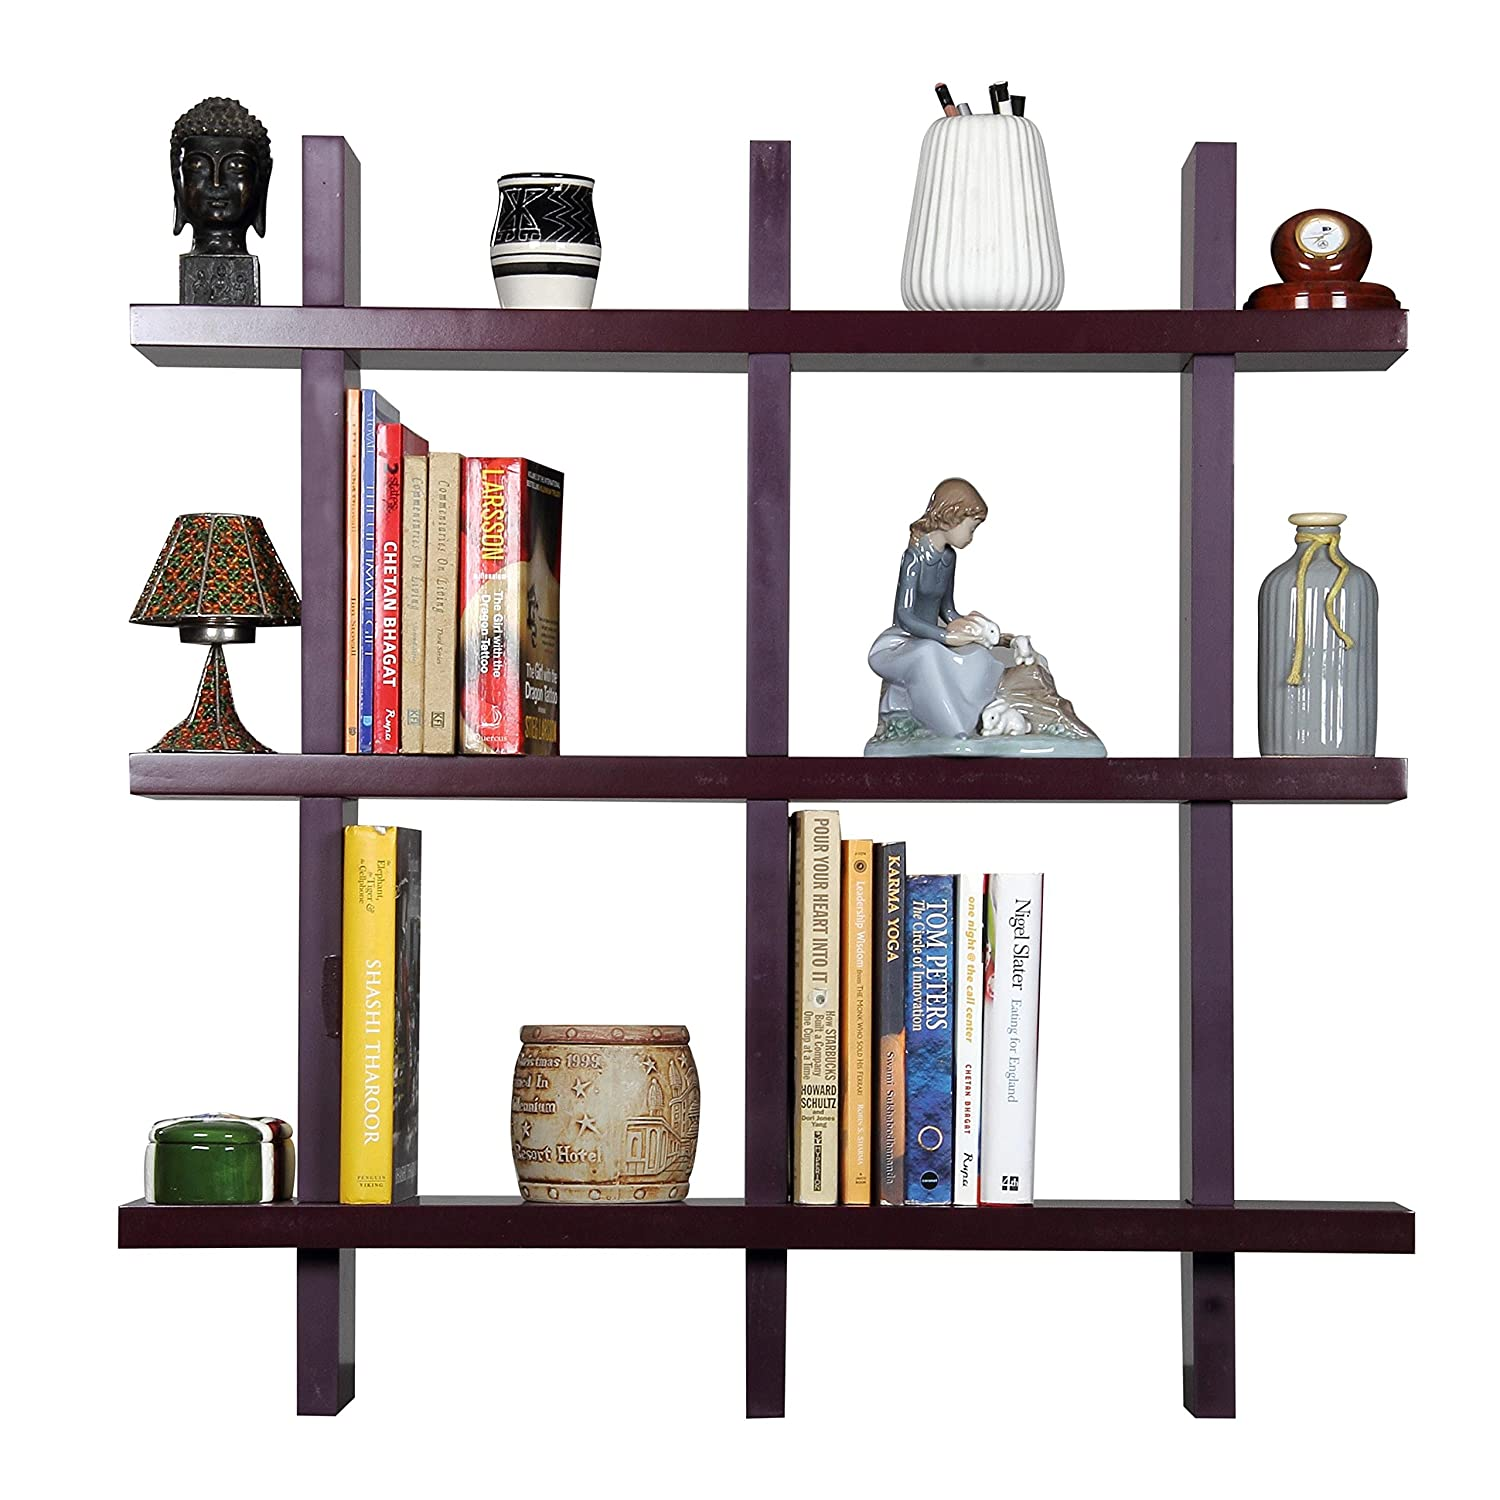 Forzza Linda Lacquered Shelf (Brown) By Amazon @ Rs.1,299